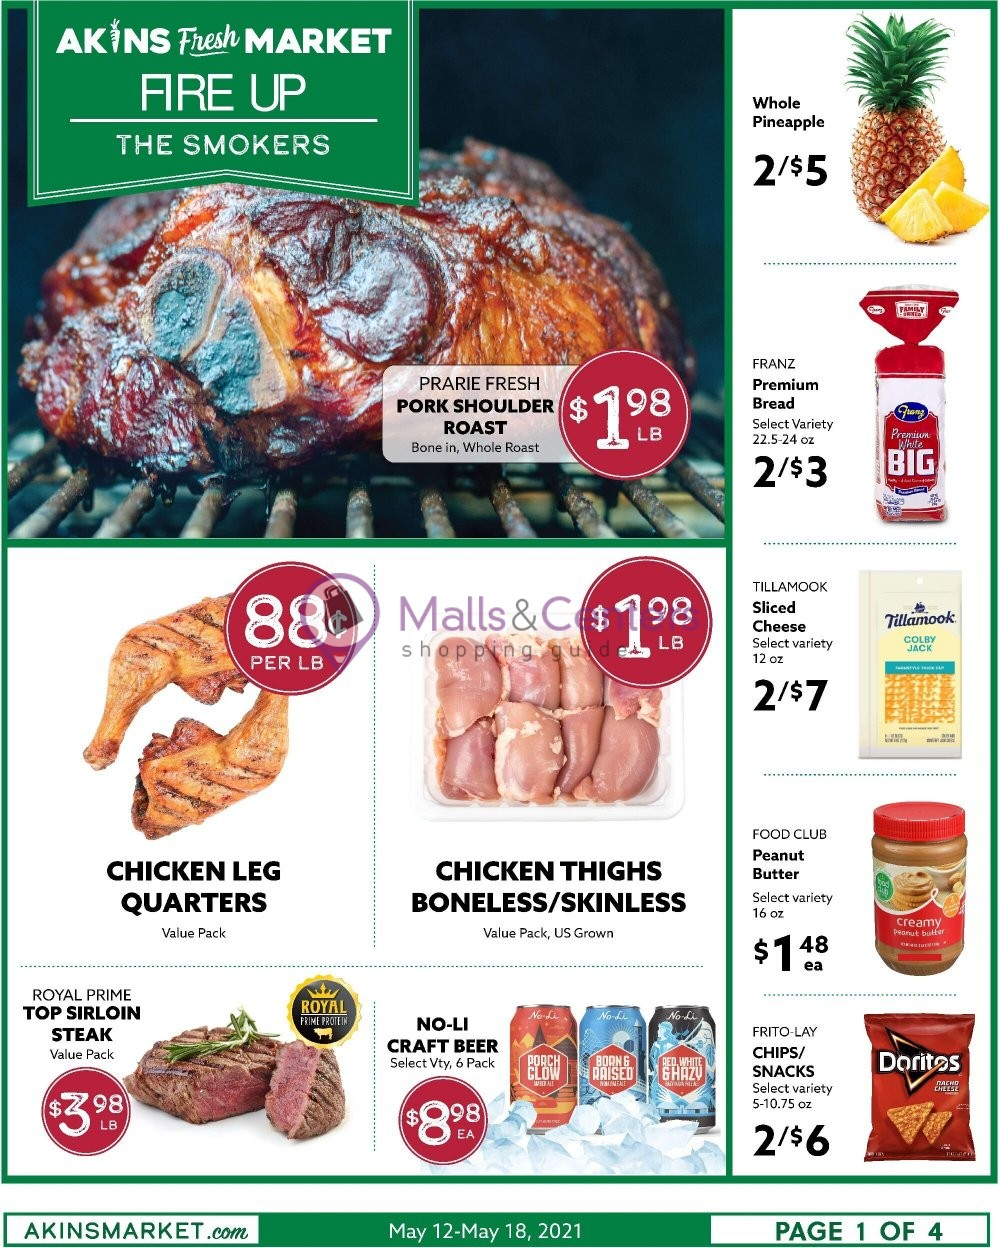 weekly ads Akins Foods - page 1 - mallscenters.com